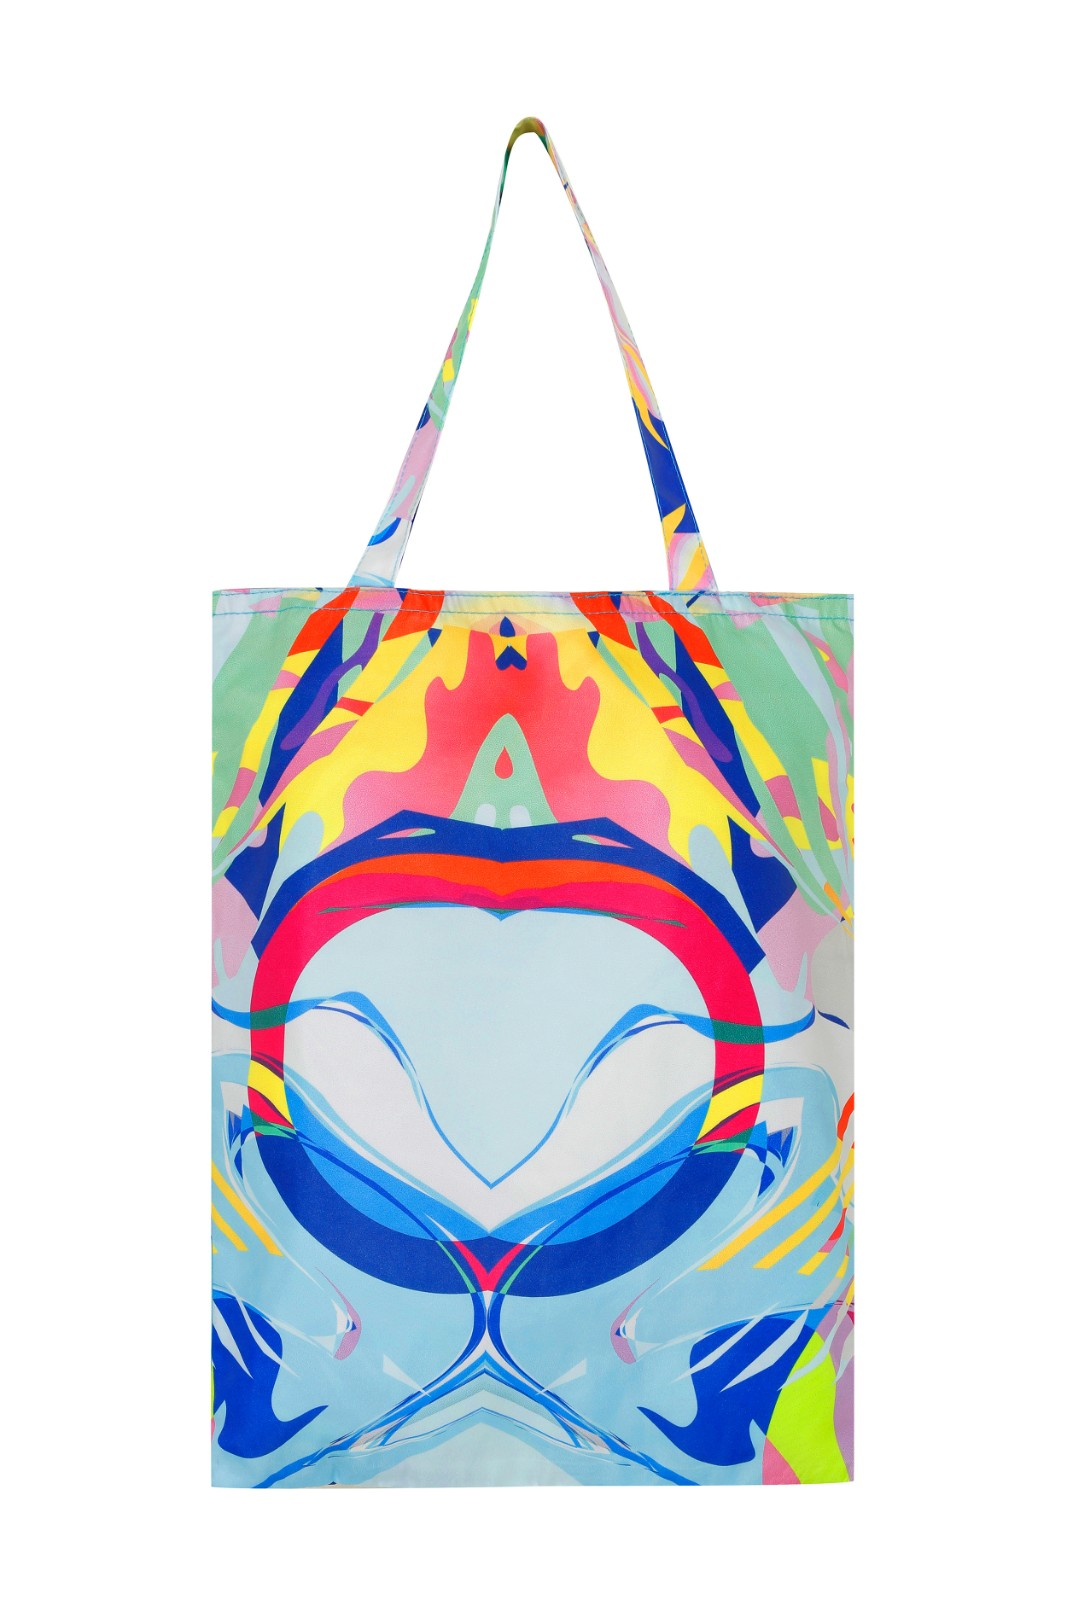 Small Size Printed Tote Bag  image no:1